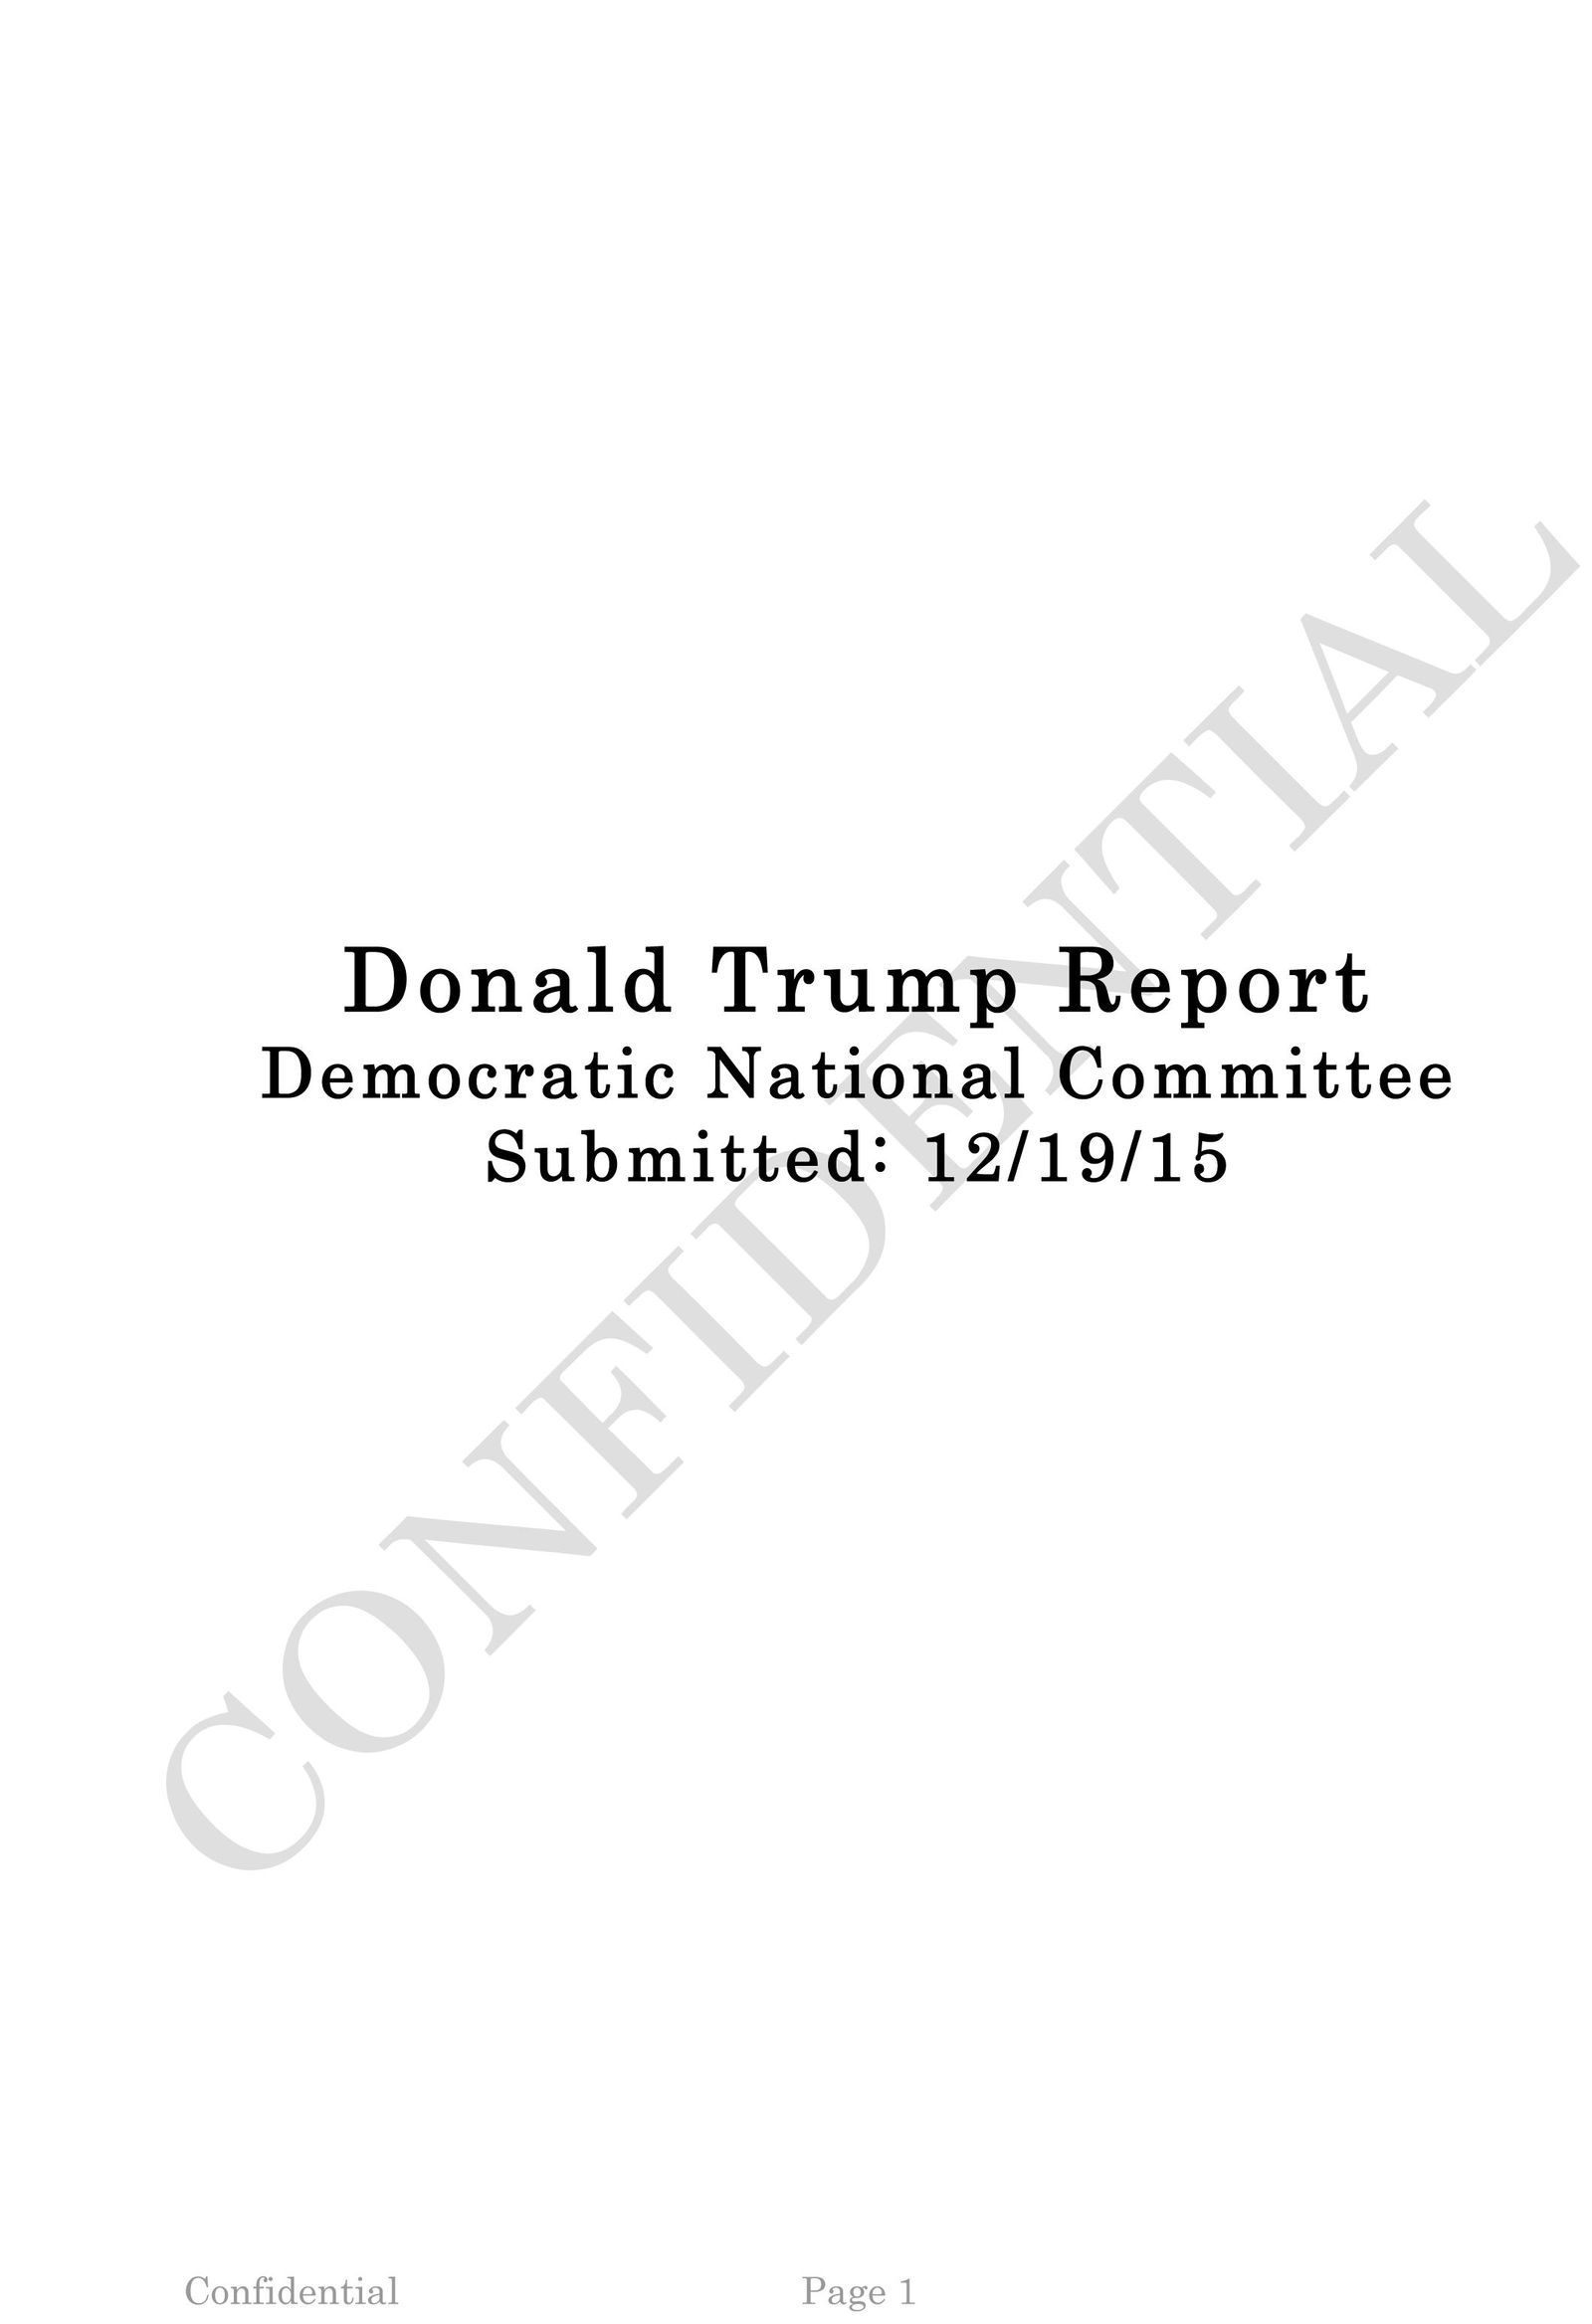 Donald Trump Report/ Guccifer